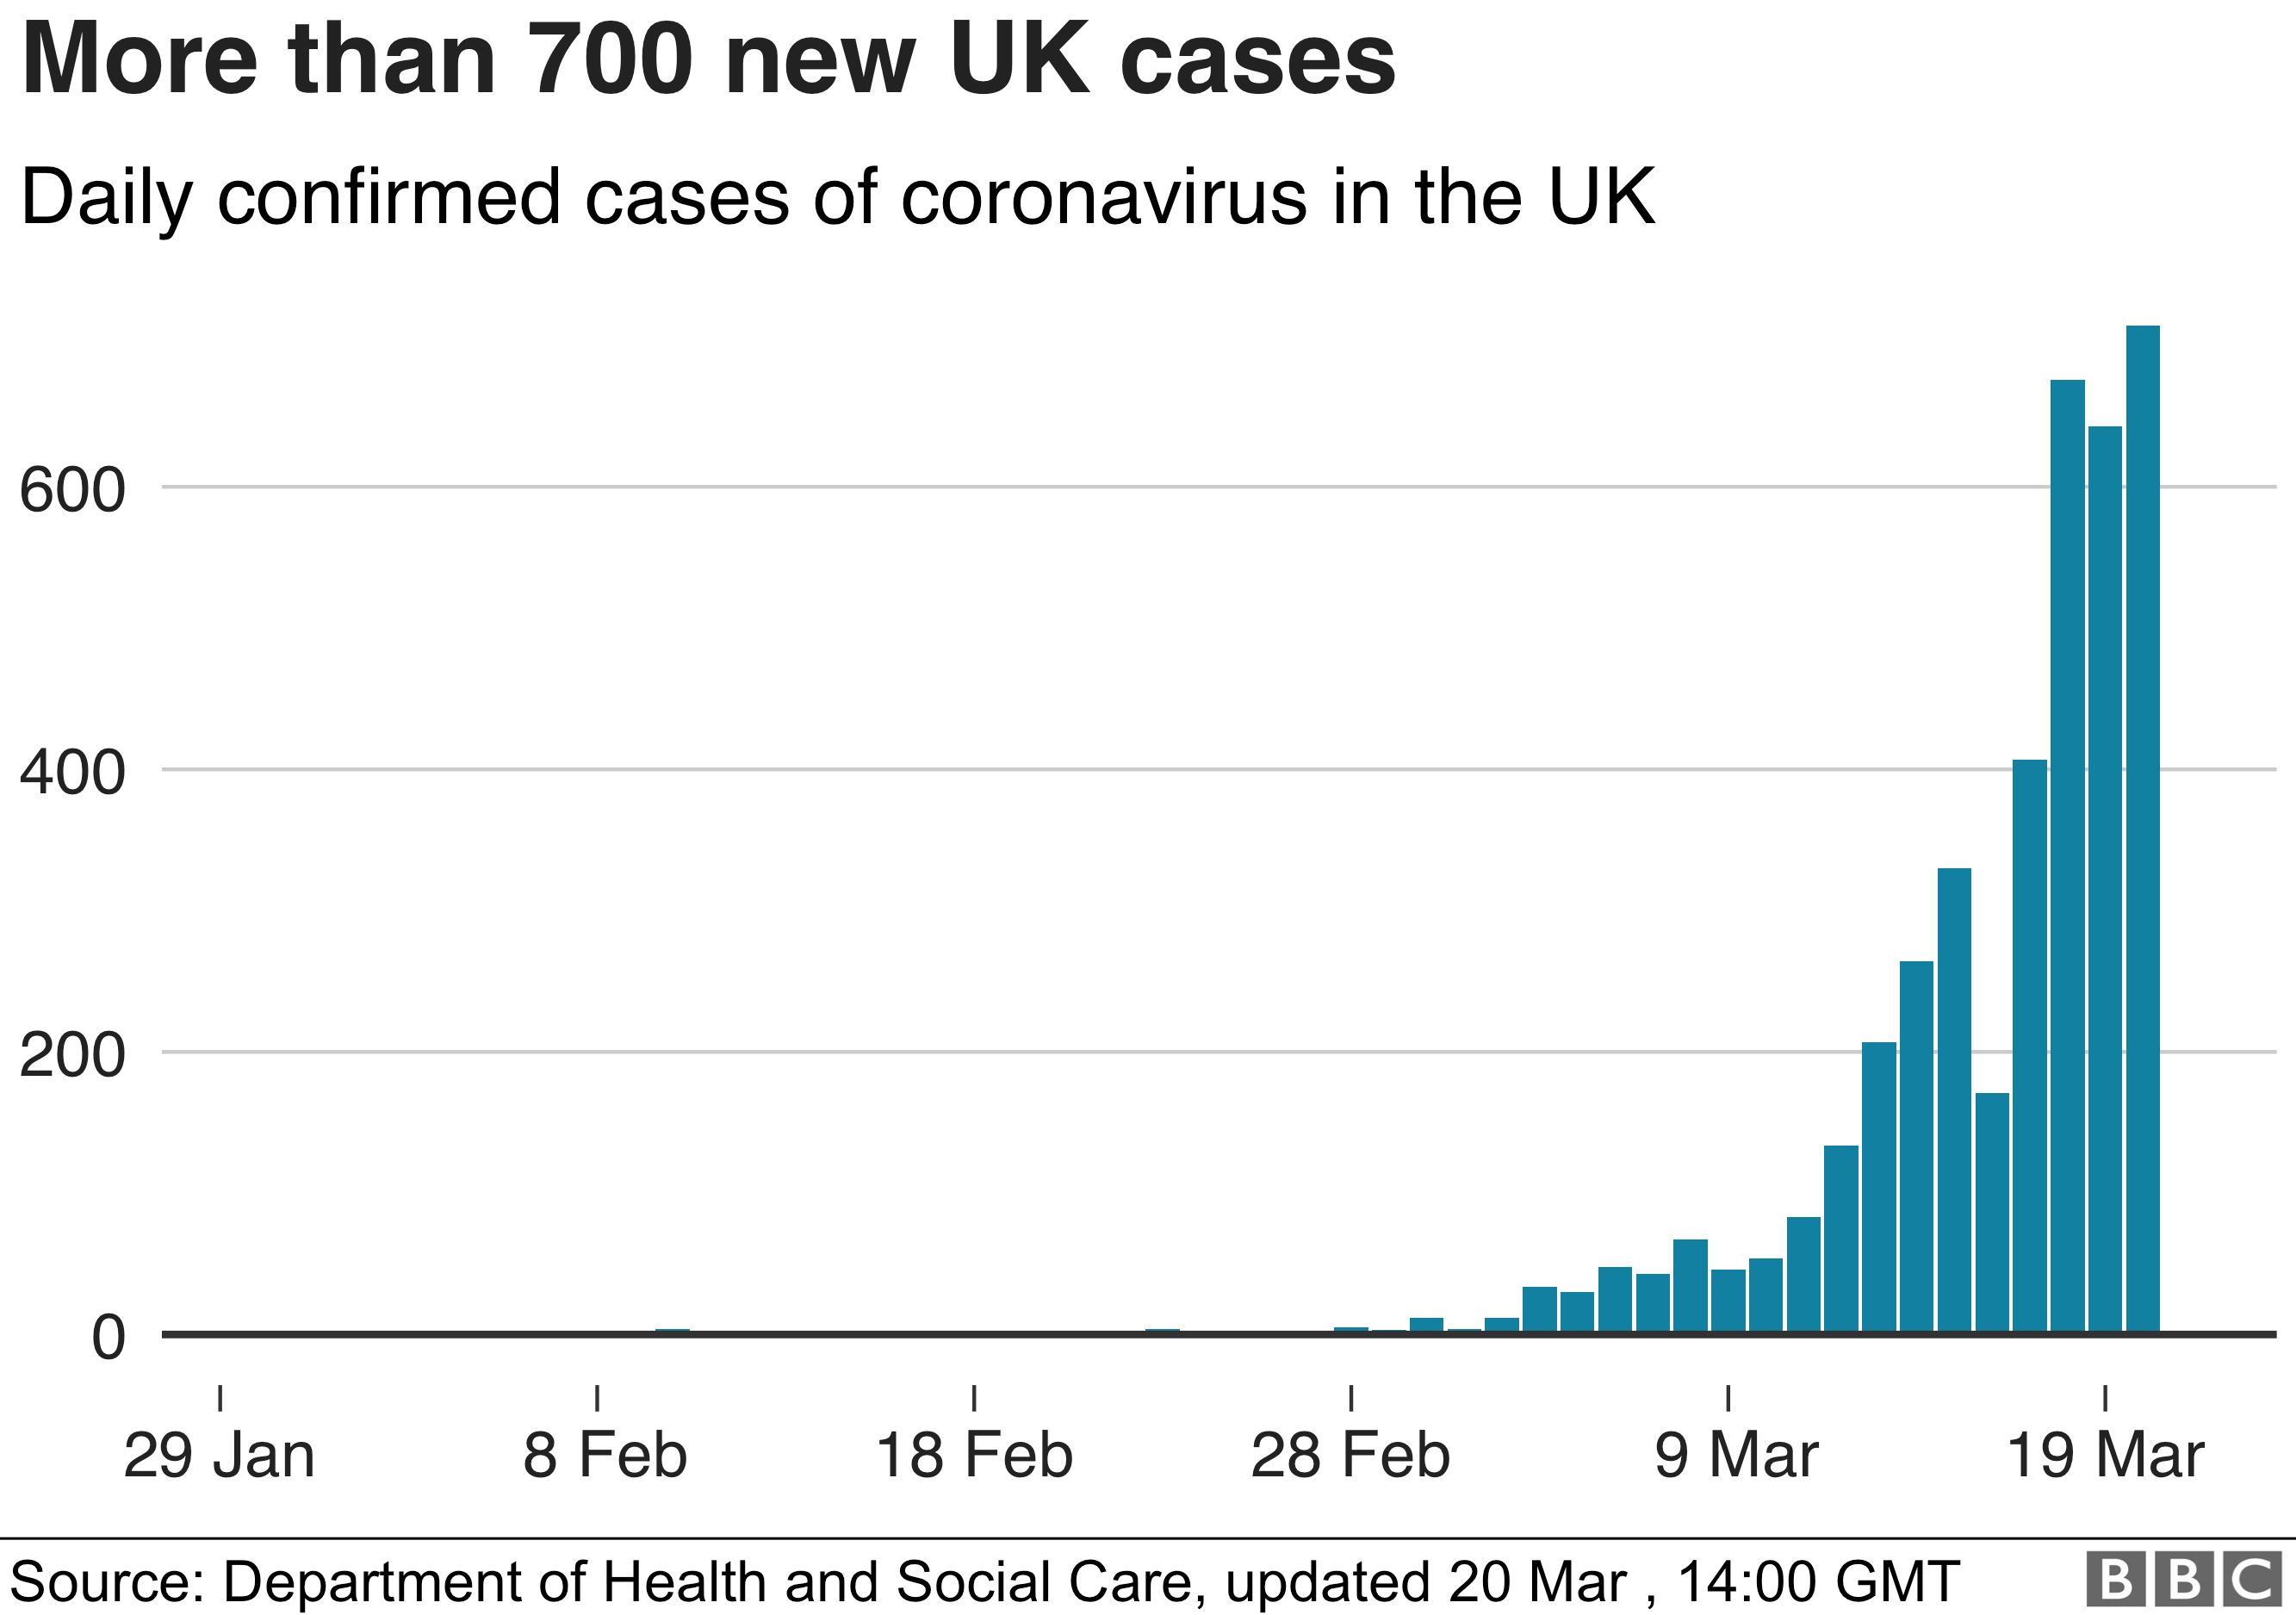 Cases in the UK